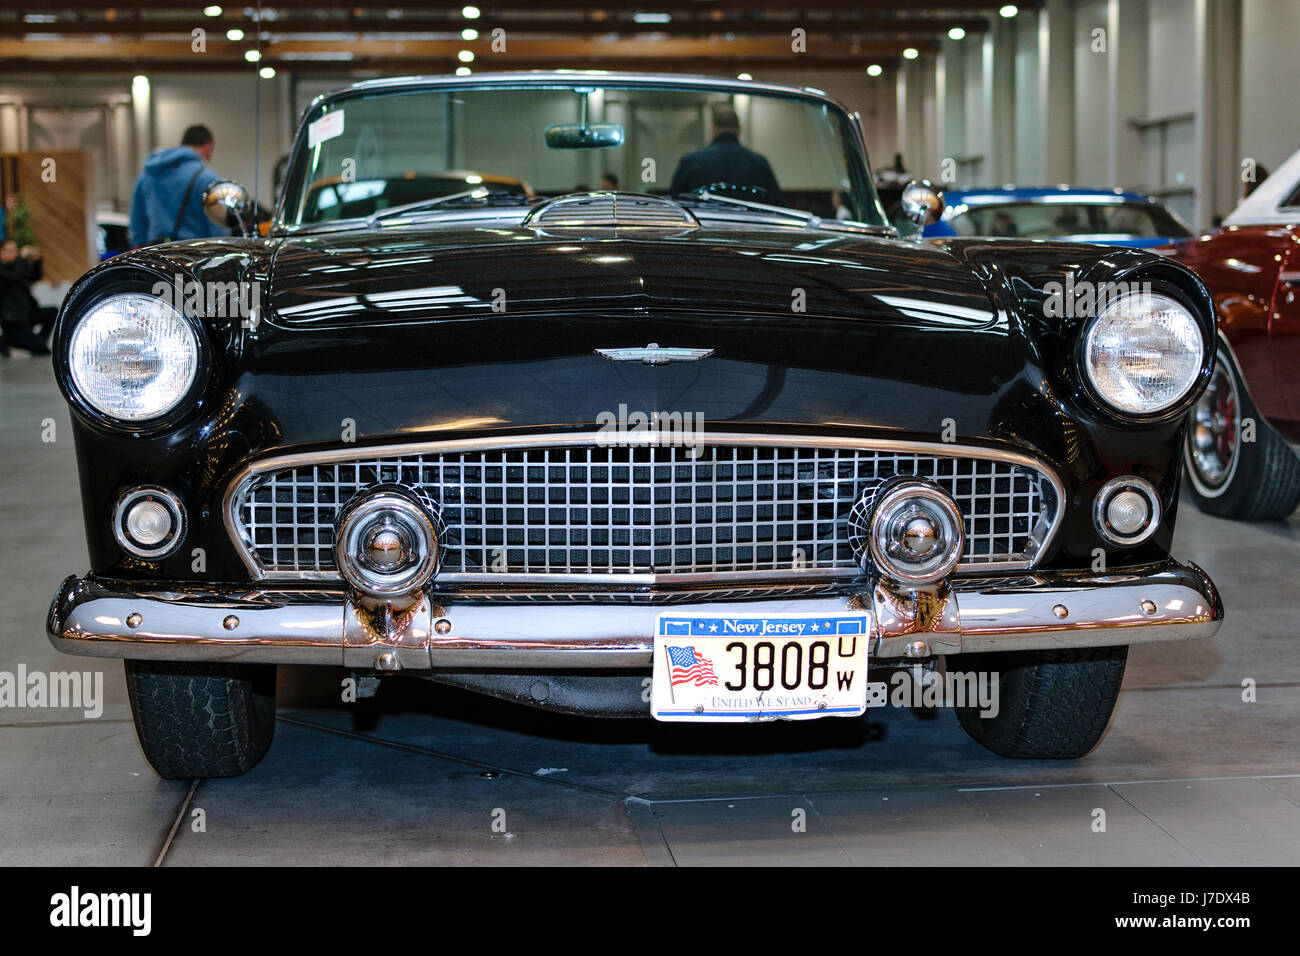 Krakow, Poland, May 21, 2017: Old Ford Thunderbird on display during MotoShow in Krakow . - Stock Image